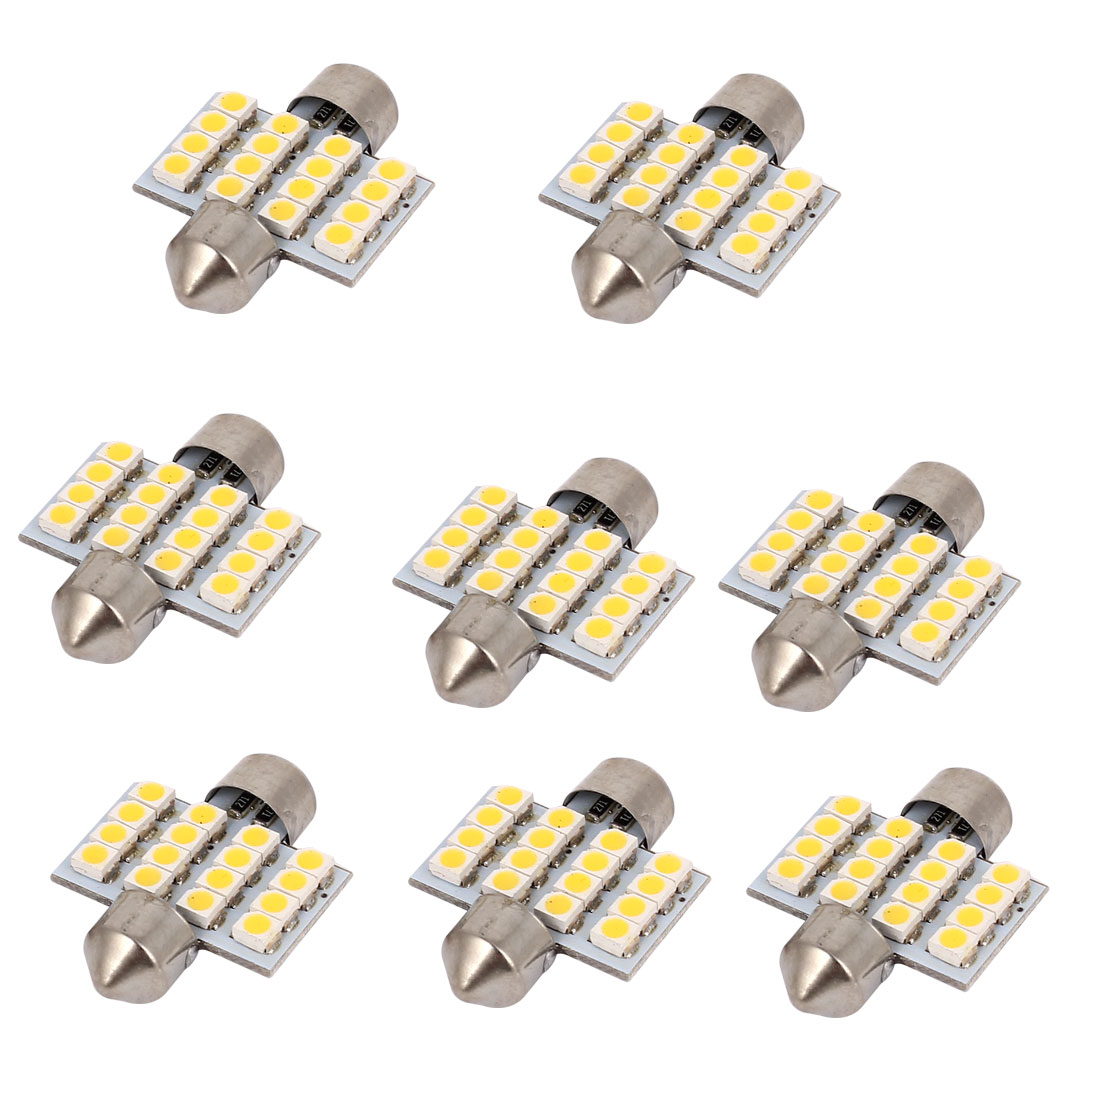 8 Pcs 31mm 16-LED 3528 SMD Warm White Festoon Dome Map Reading Light 3175